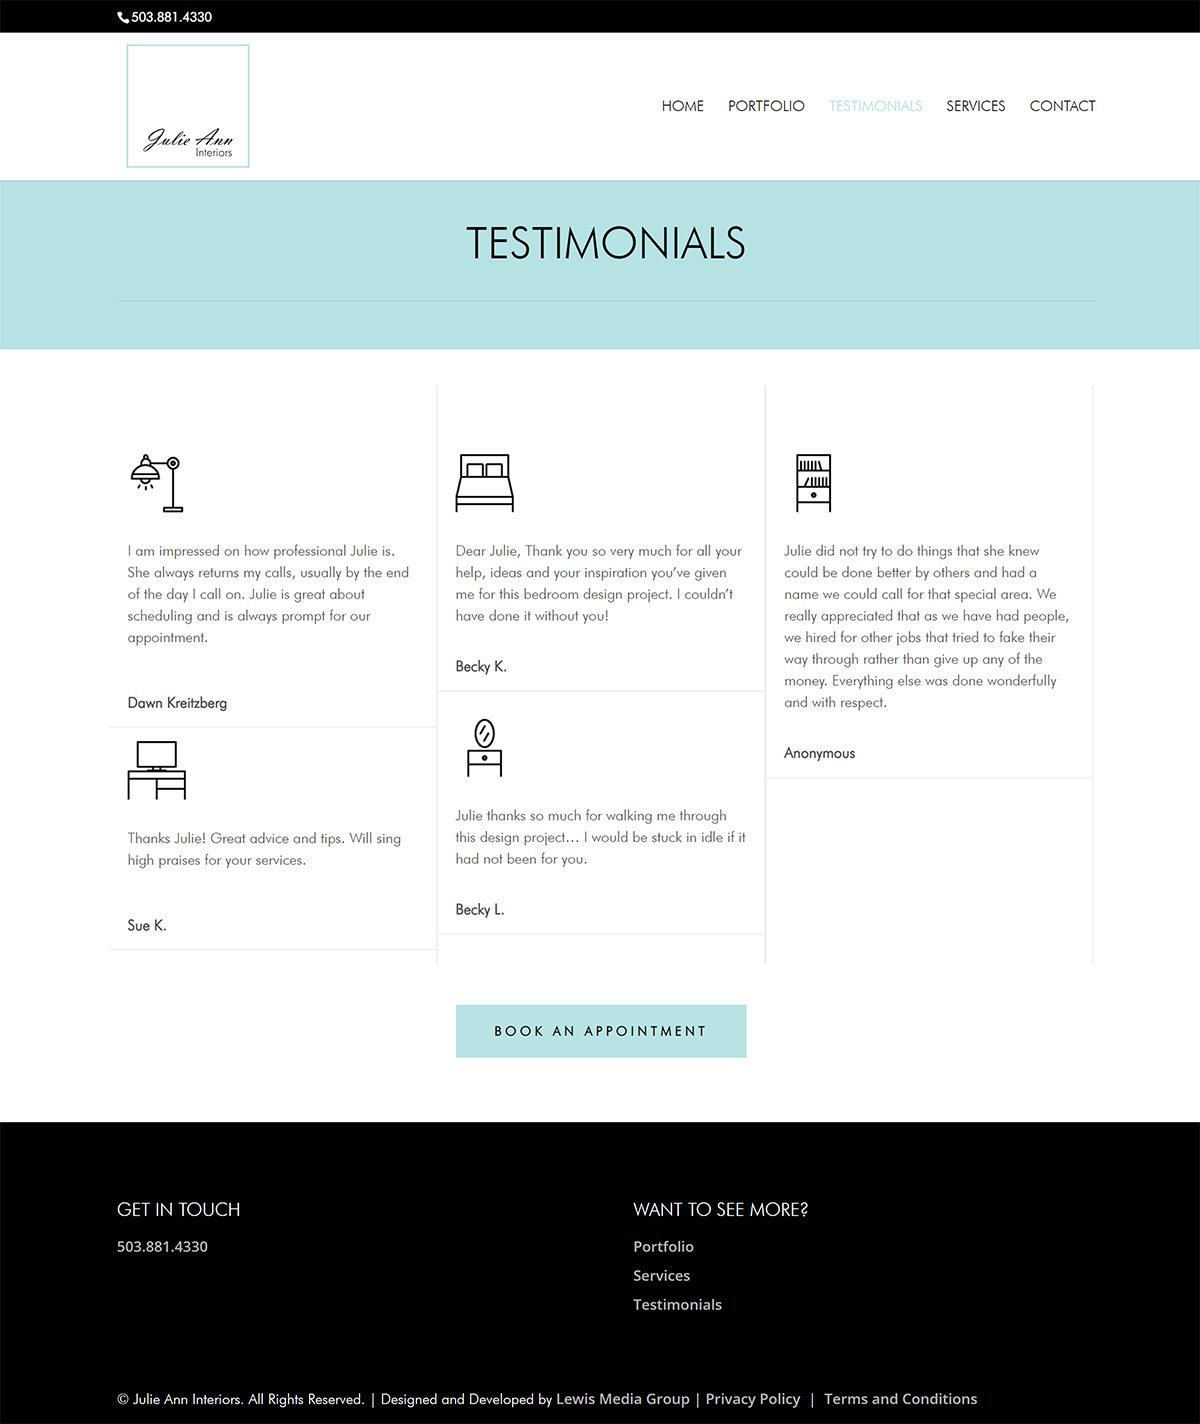 Julie Ann Interiors website testimonials page screenshot with robins egg blue, white, and black